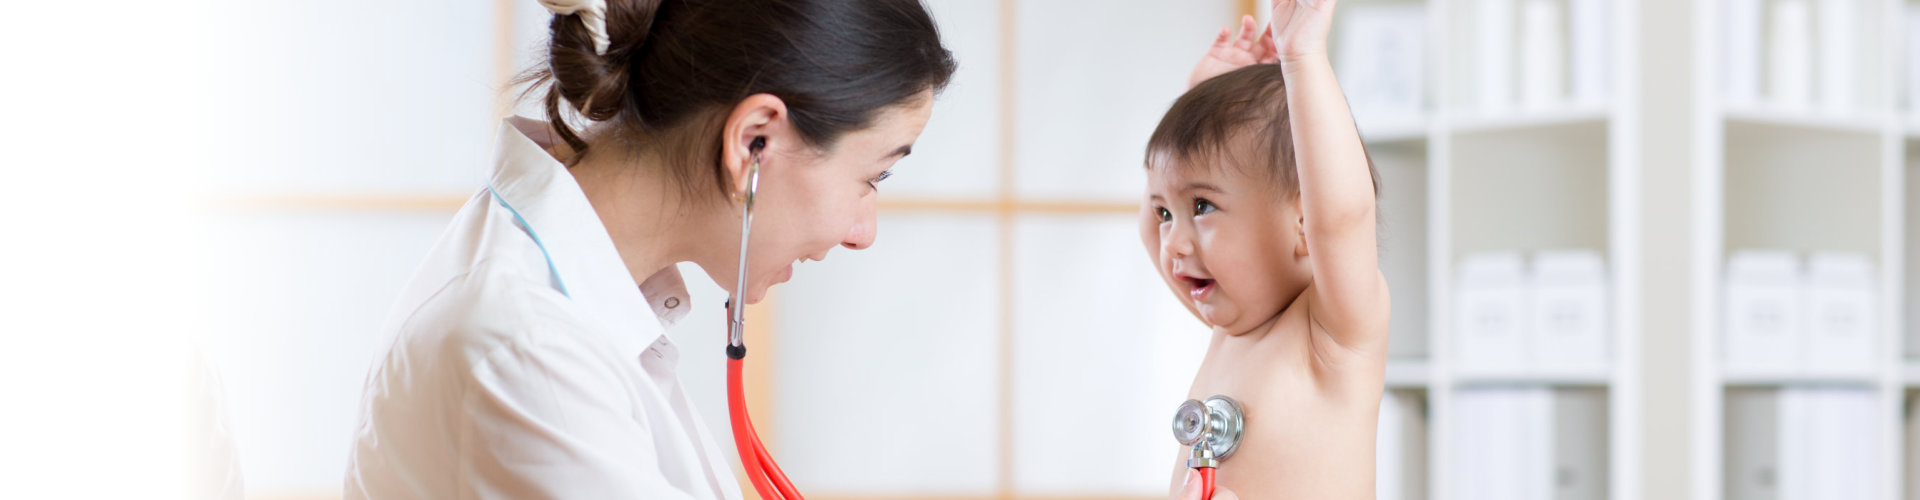 nurse using her stethoscope on a toddler